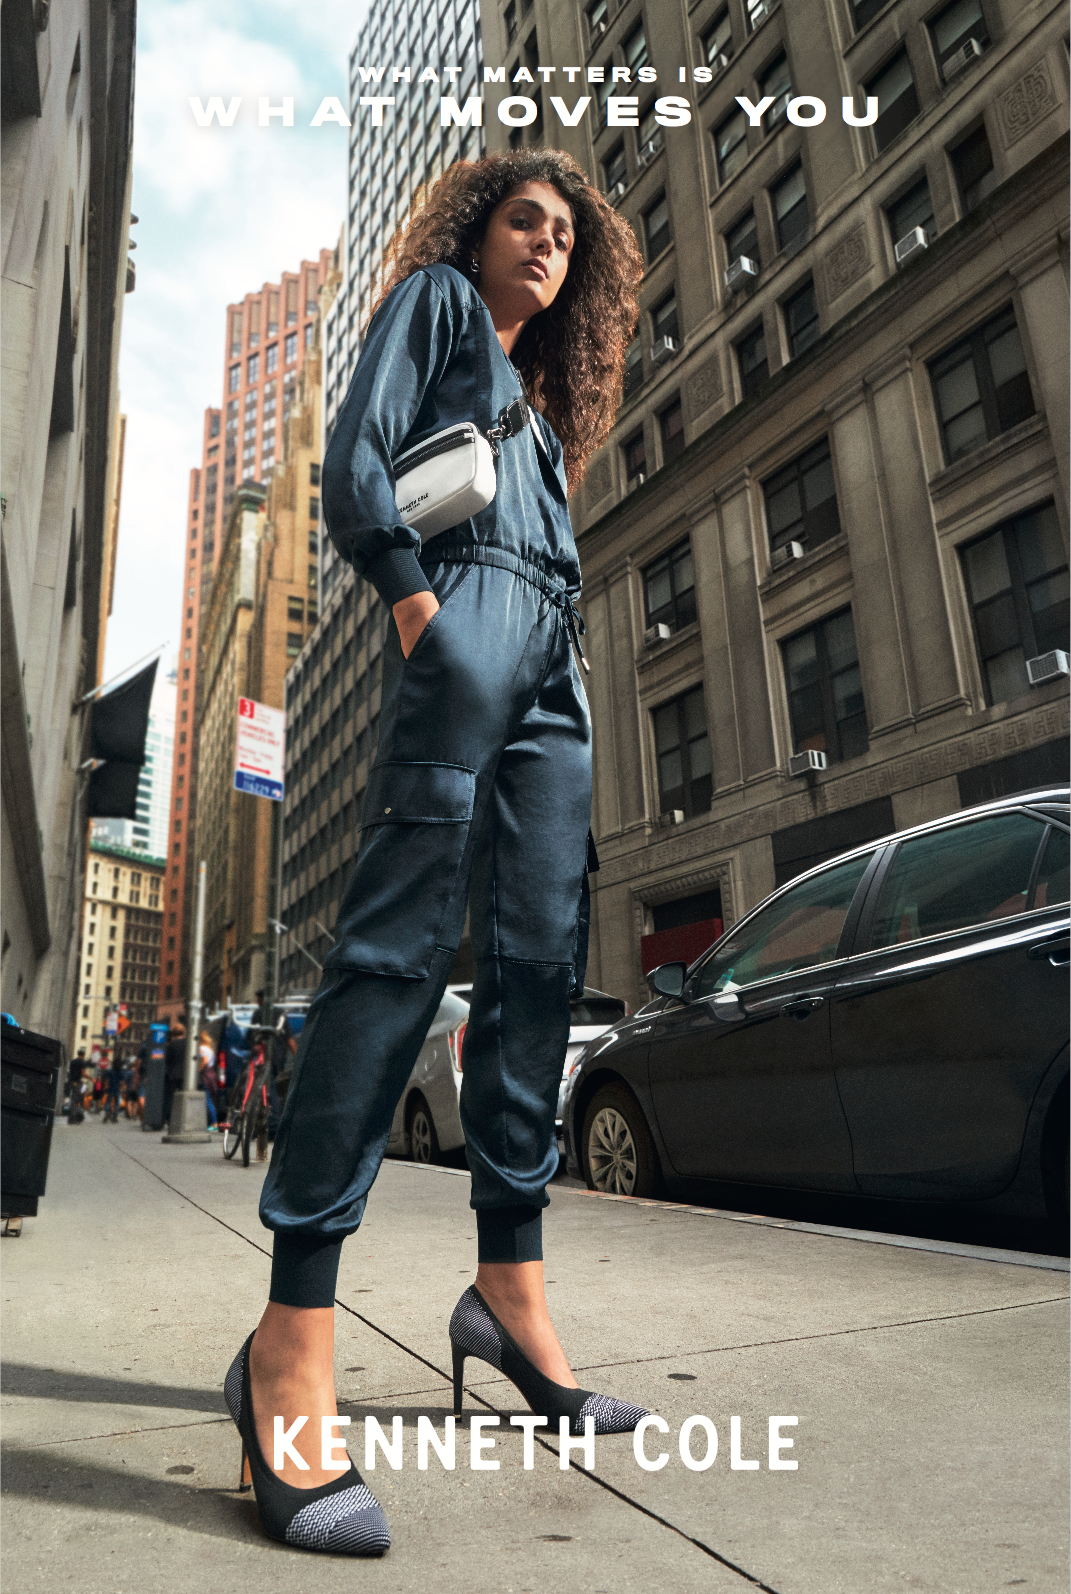 KENNETH COLE  Spring '19